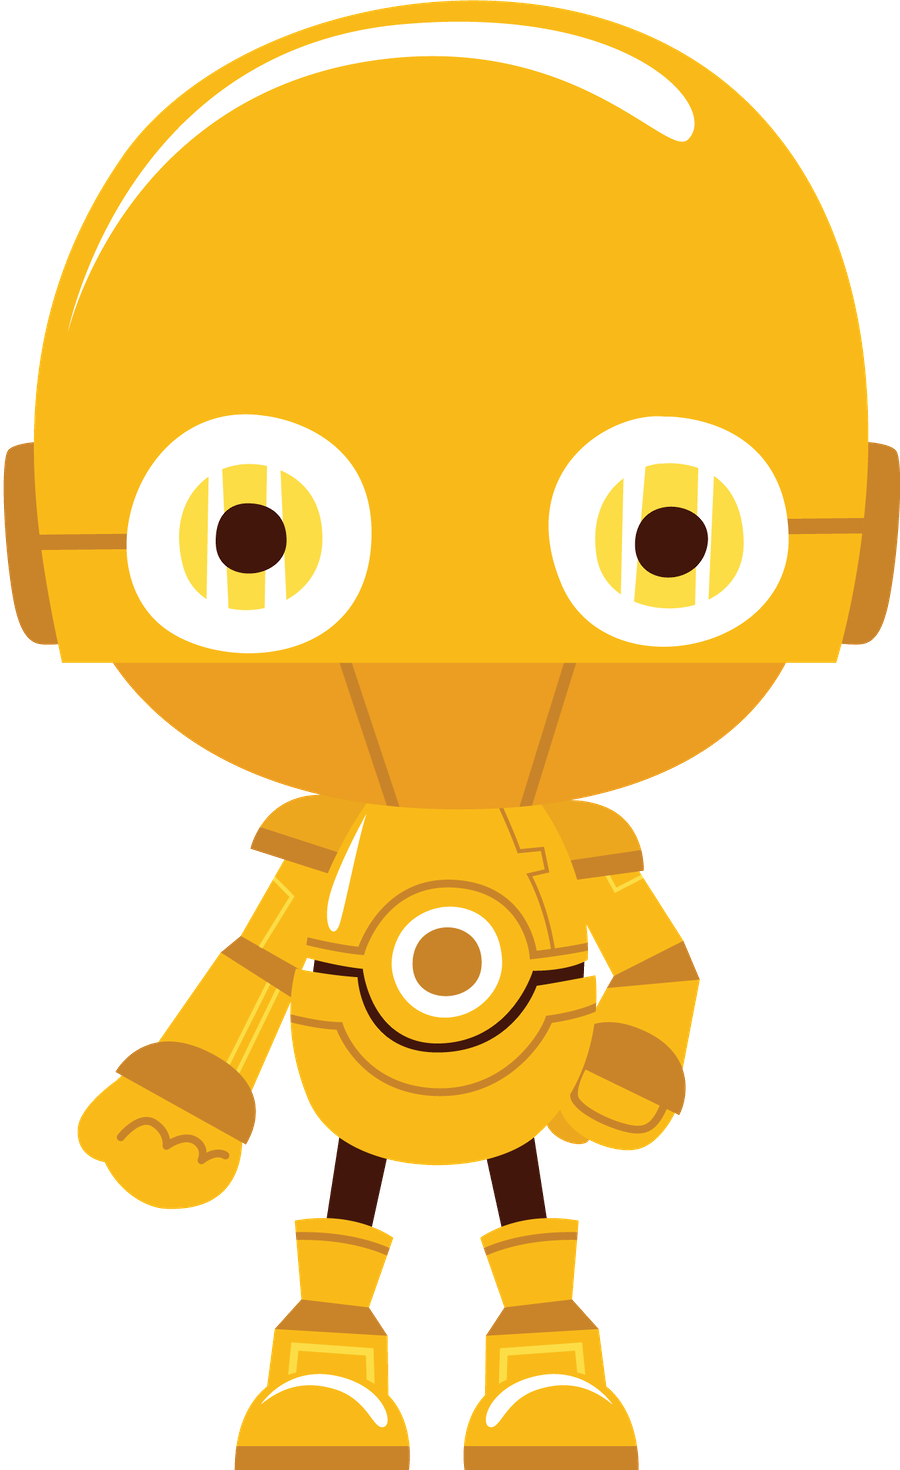 clipart library stock Wars clipart. Star orange robot free.